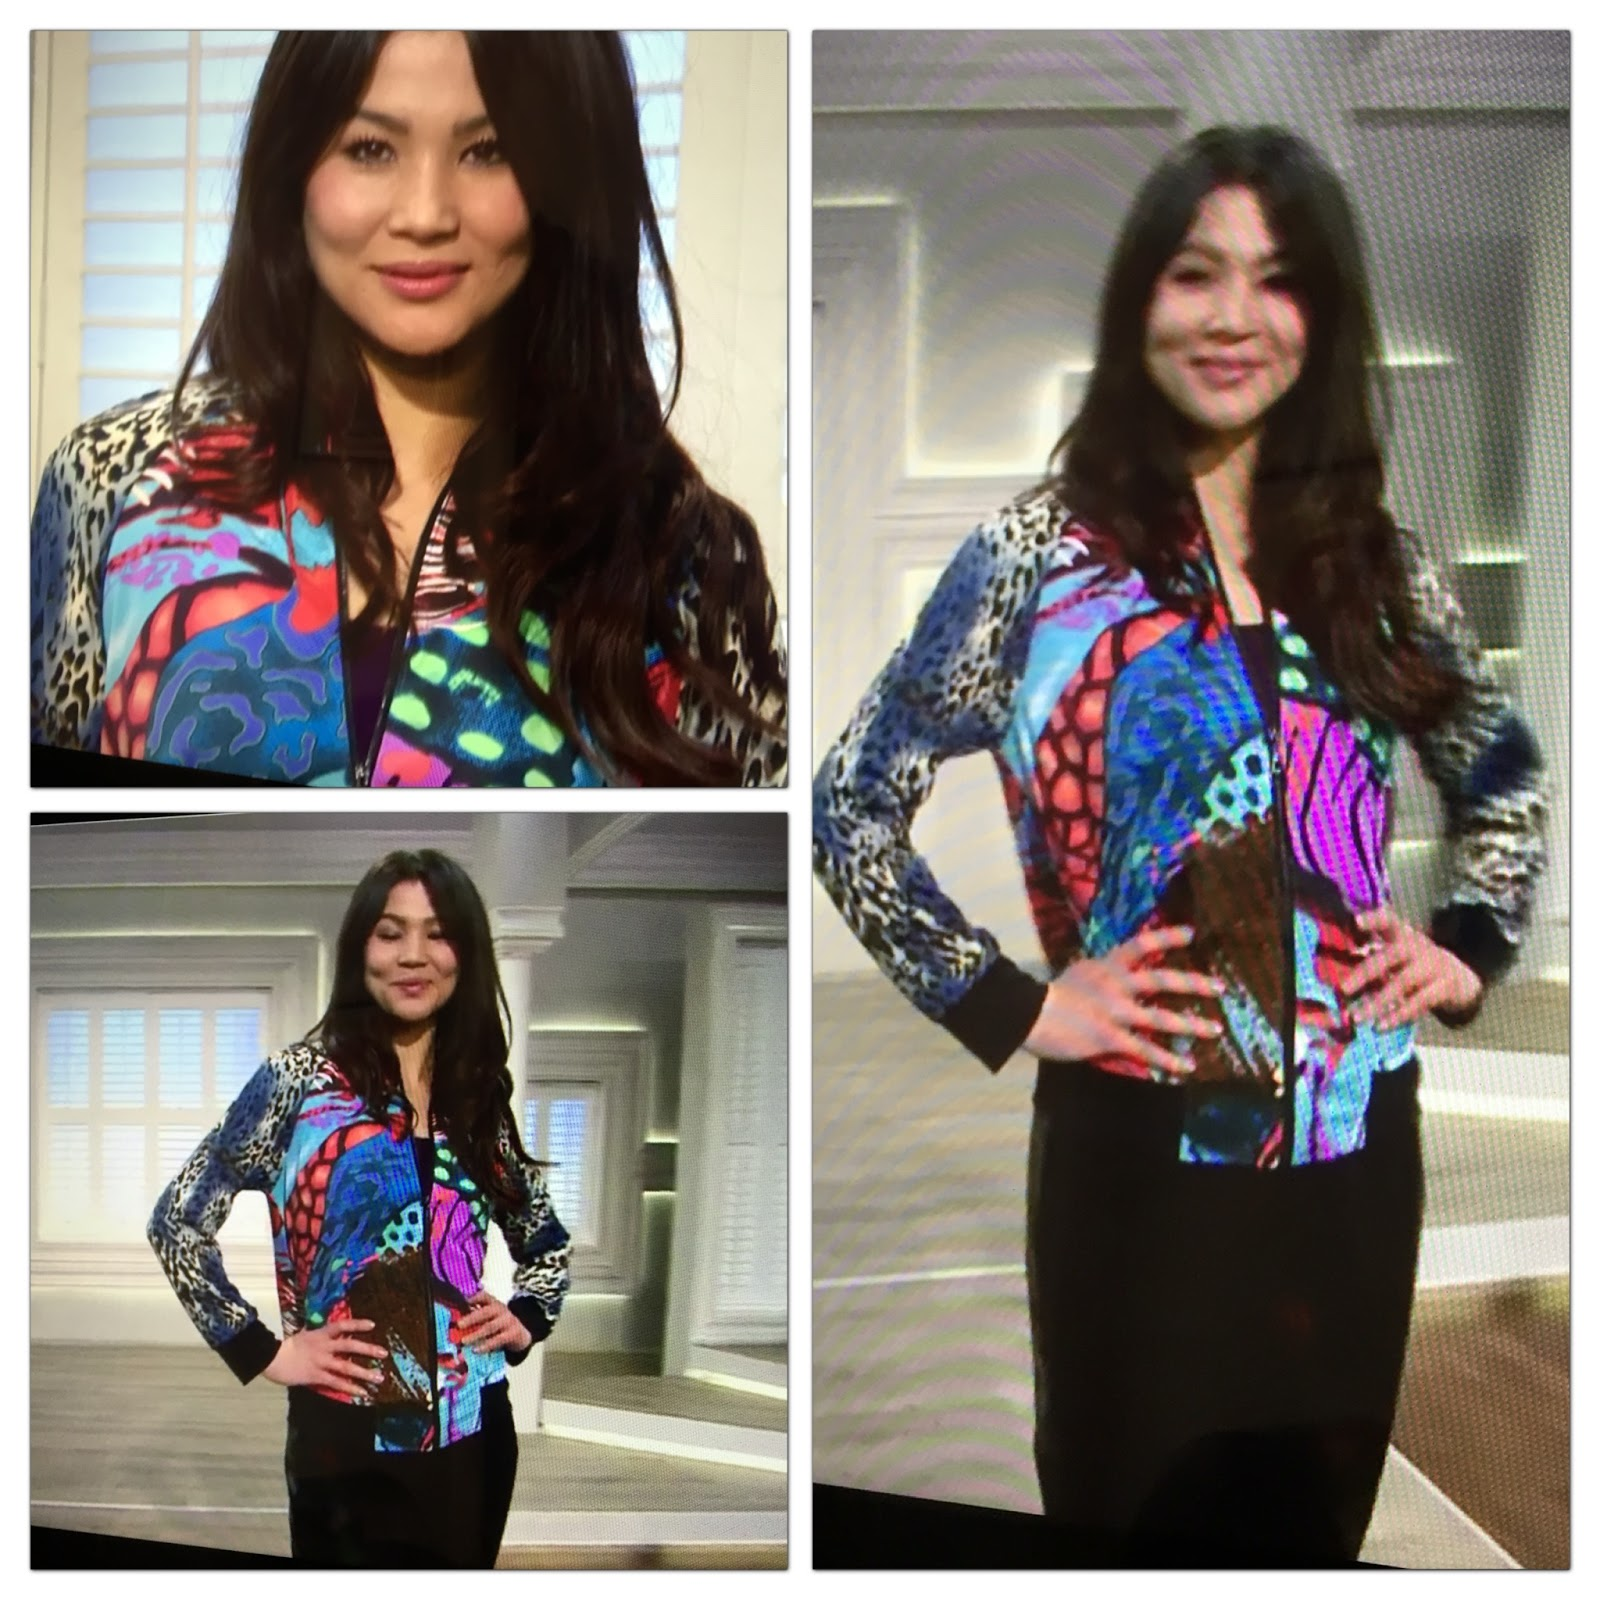 Nv nick verreosqvc uk march 2016 show and photo recap model in nv nick verreos printed knit jersey bombertrack jacket qvc uk ccuart Gallery